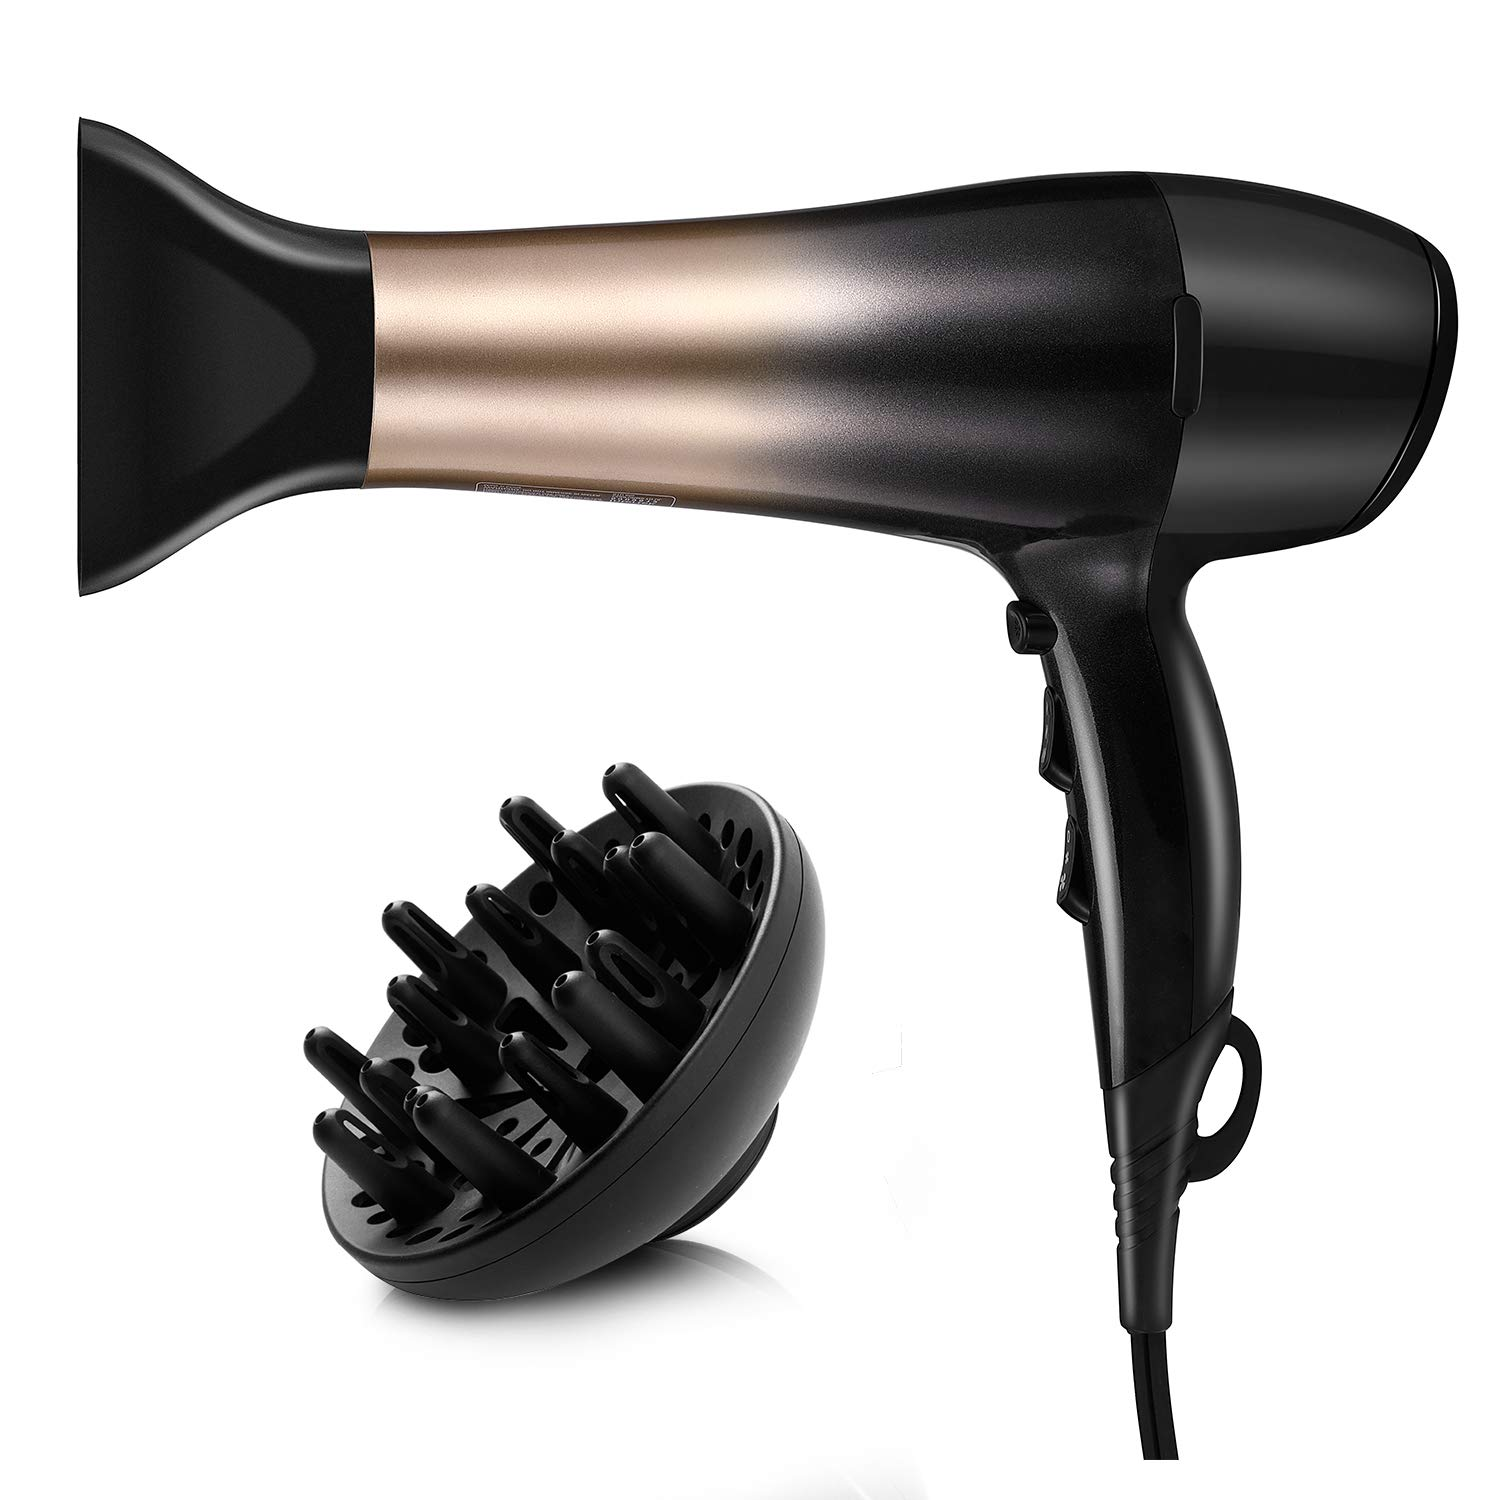 KIPOZI 1875-Watt Nano Ionic Low Noise Lightweight Hair Dryer